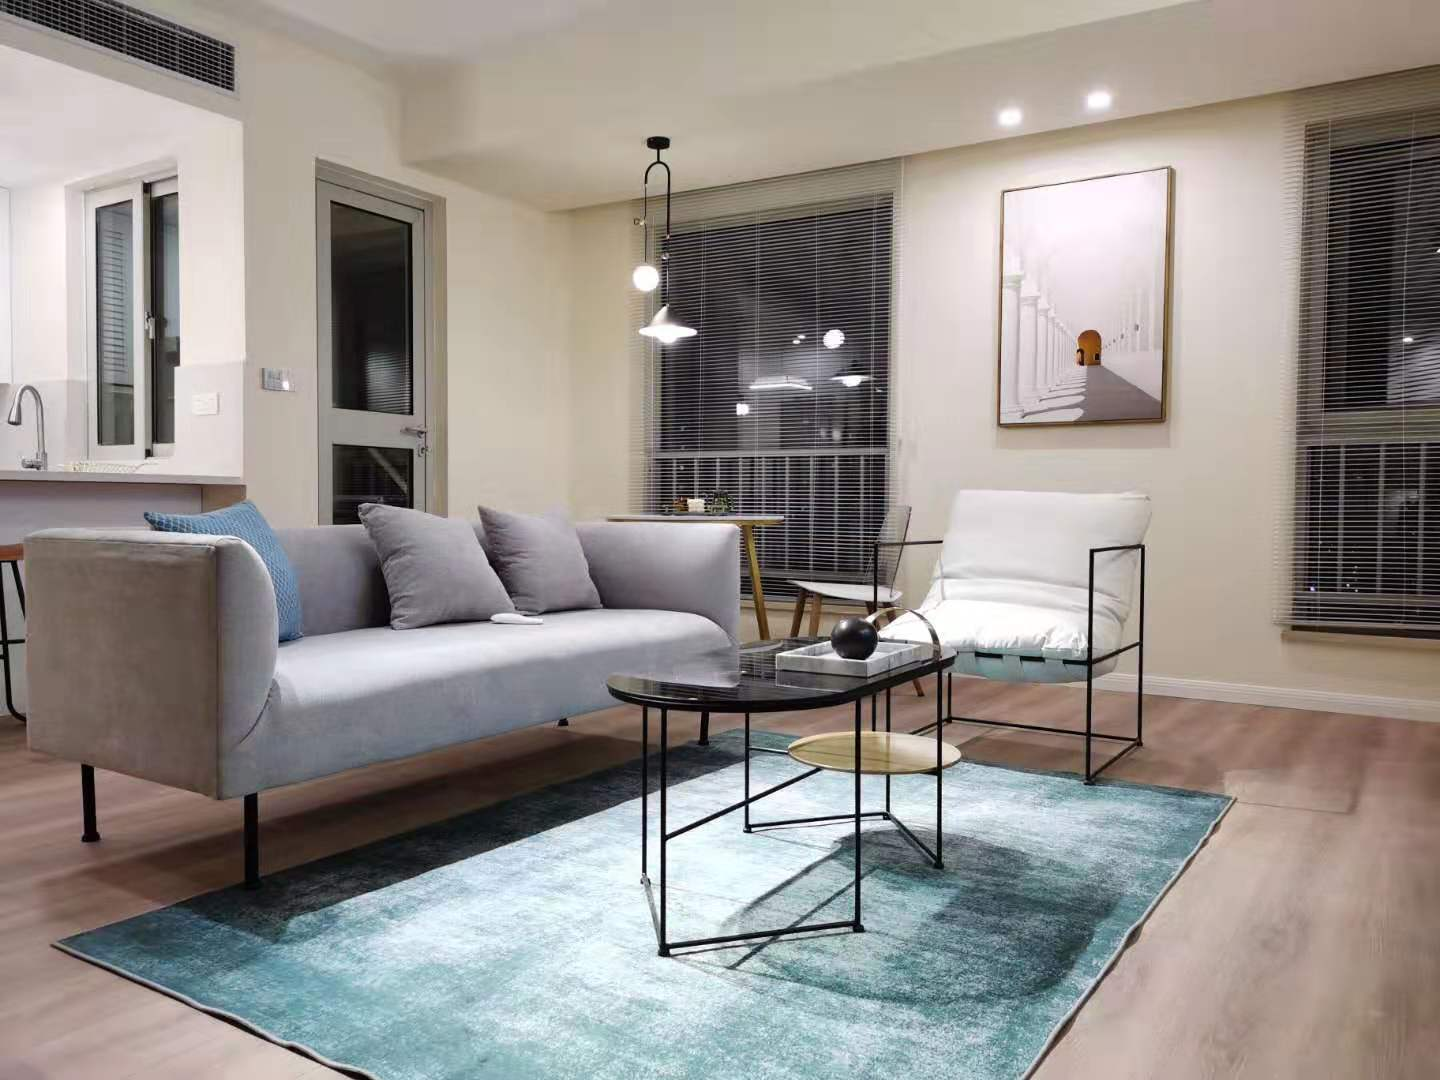 Newly 1br in new building Near West nanjing Rd